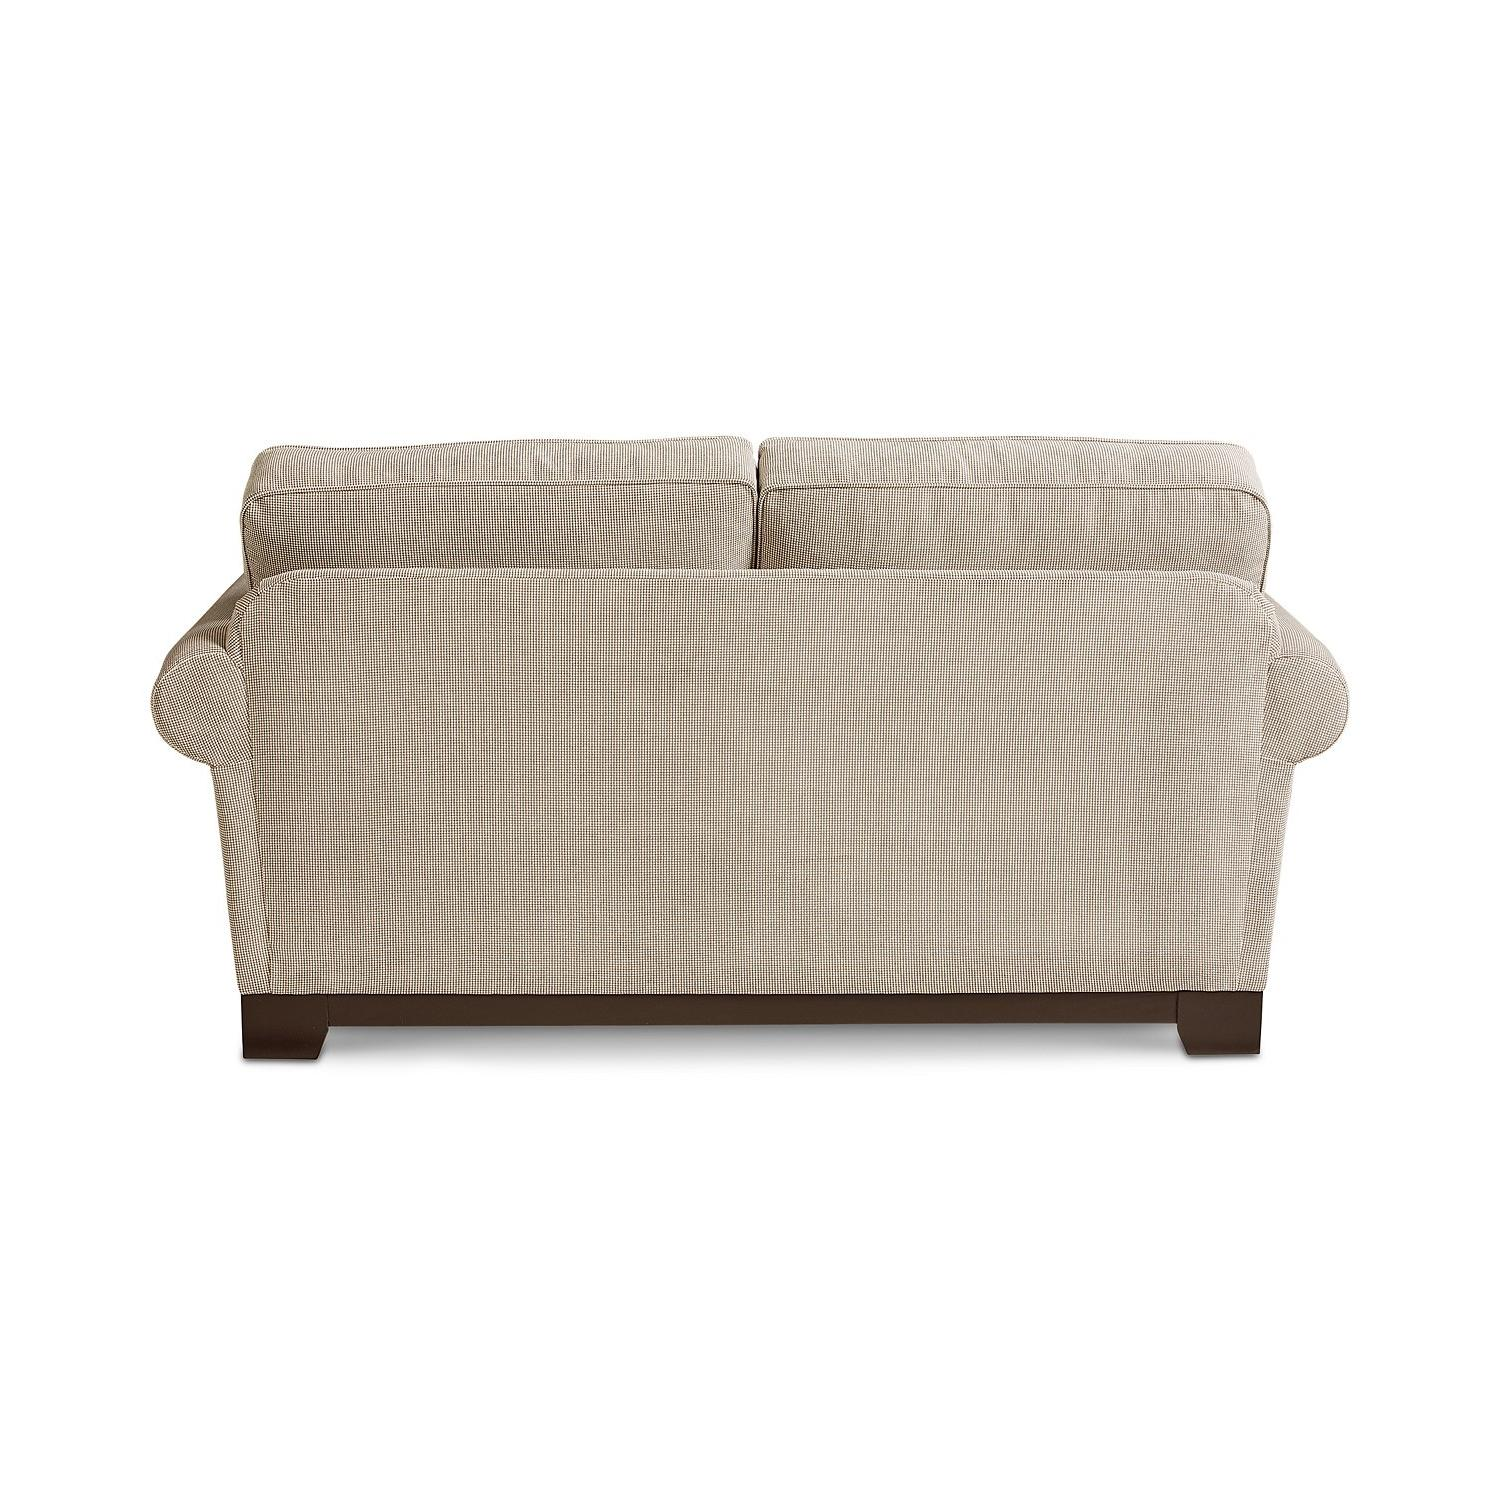 Macy's Medland Fabric Roll Arm Loveseat w/ 2 Pillows - image-3